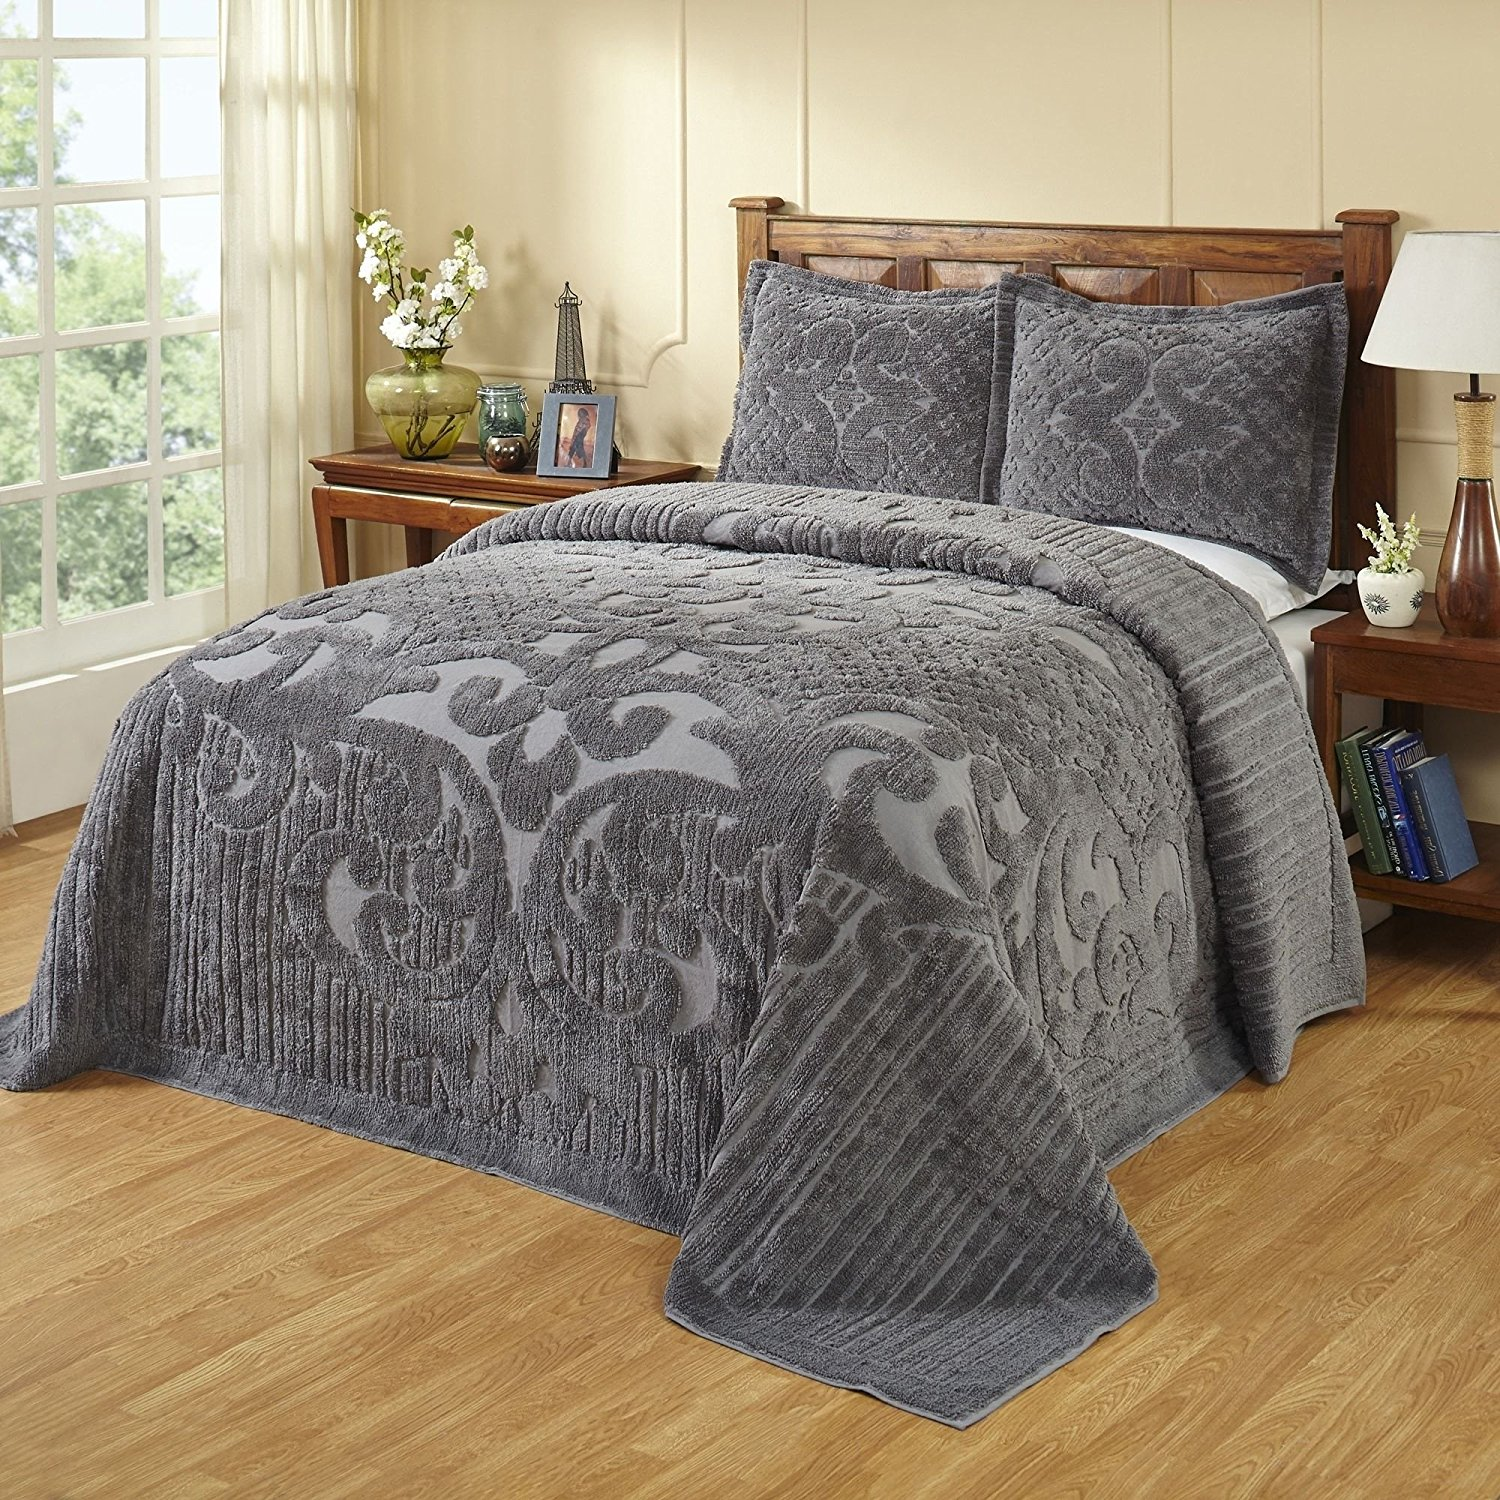 C&U 1 Piece Grey Oversized Chenille Bedspread King, Gray Medallion Pattern Oversize to The Floor Extra Long Bedding, Wide Drapes Over Edge Drops Down Shabby Chic French Country Damask Vintage, Cotton